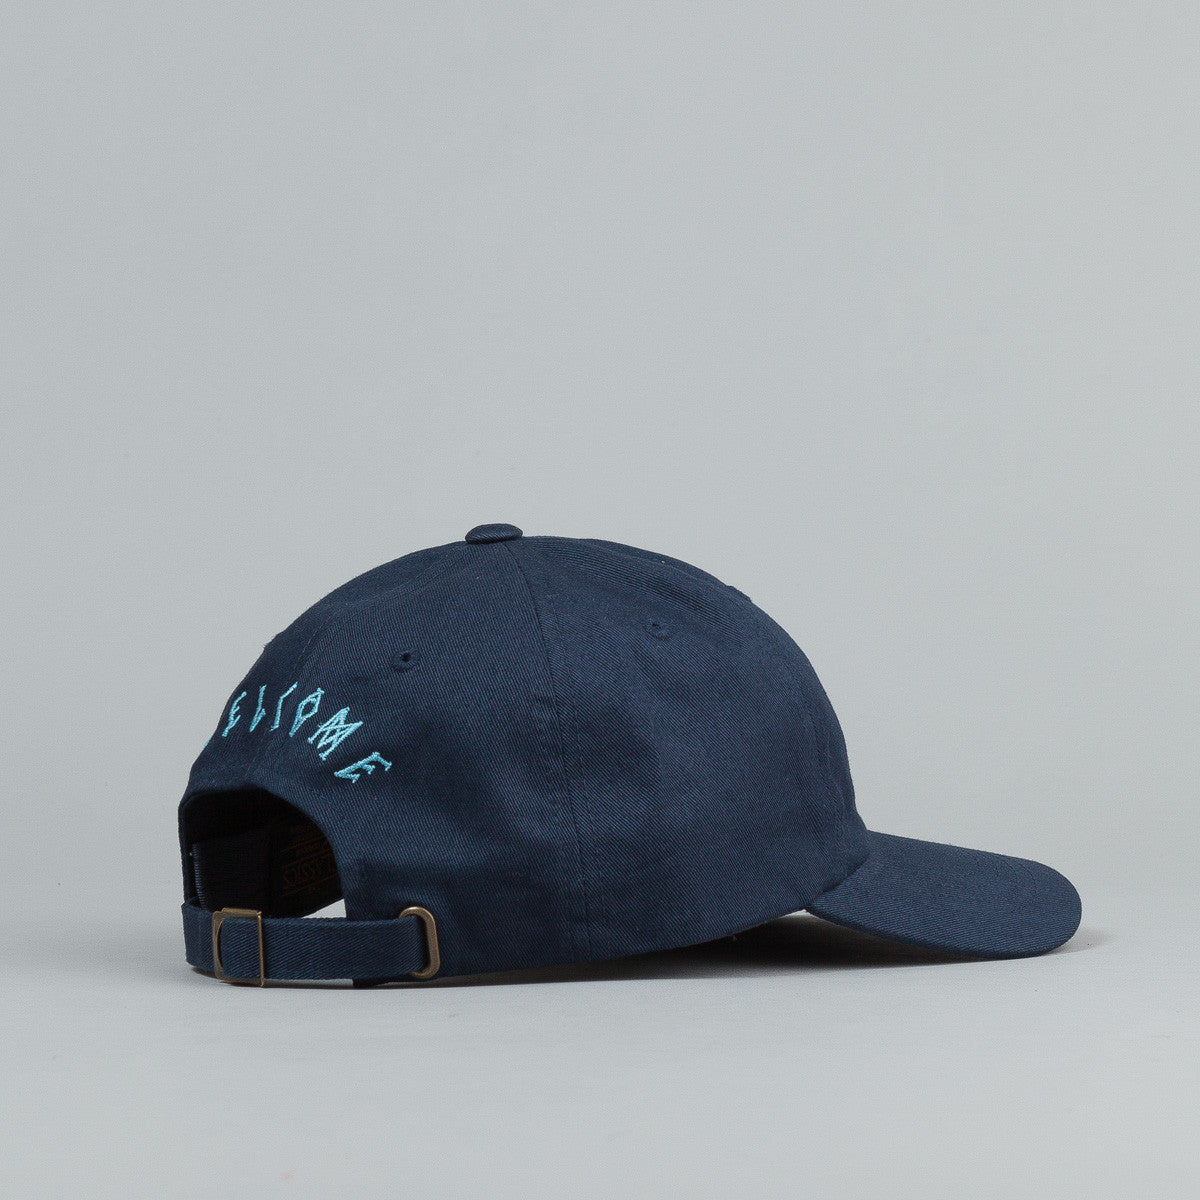 Welcome Rocking Dog Slider Cap - Navy / Light Blue